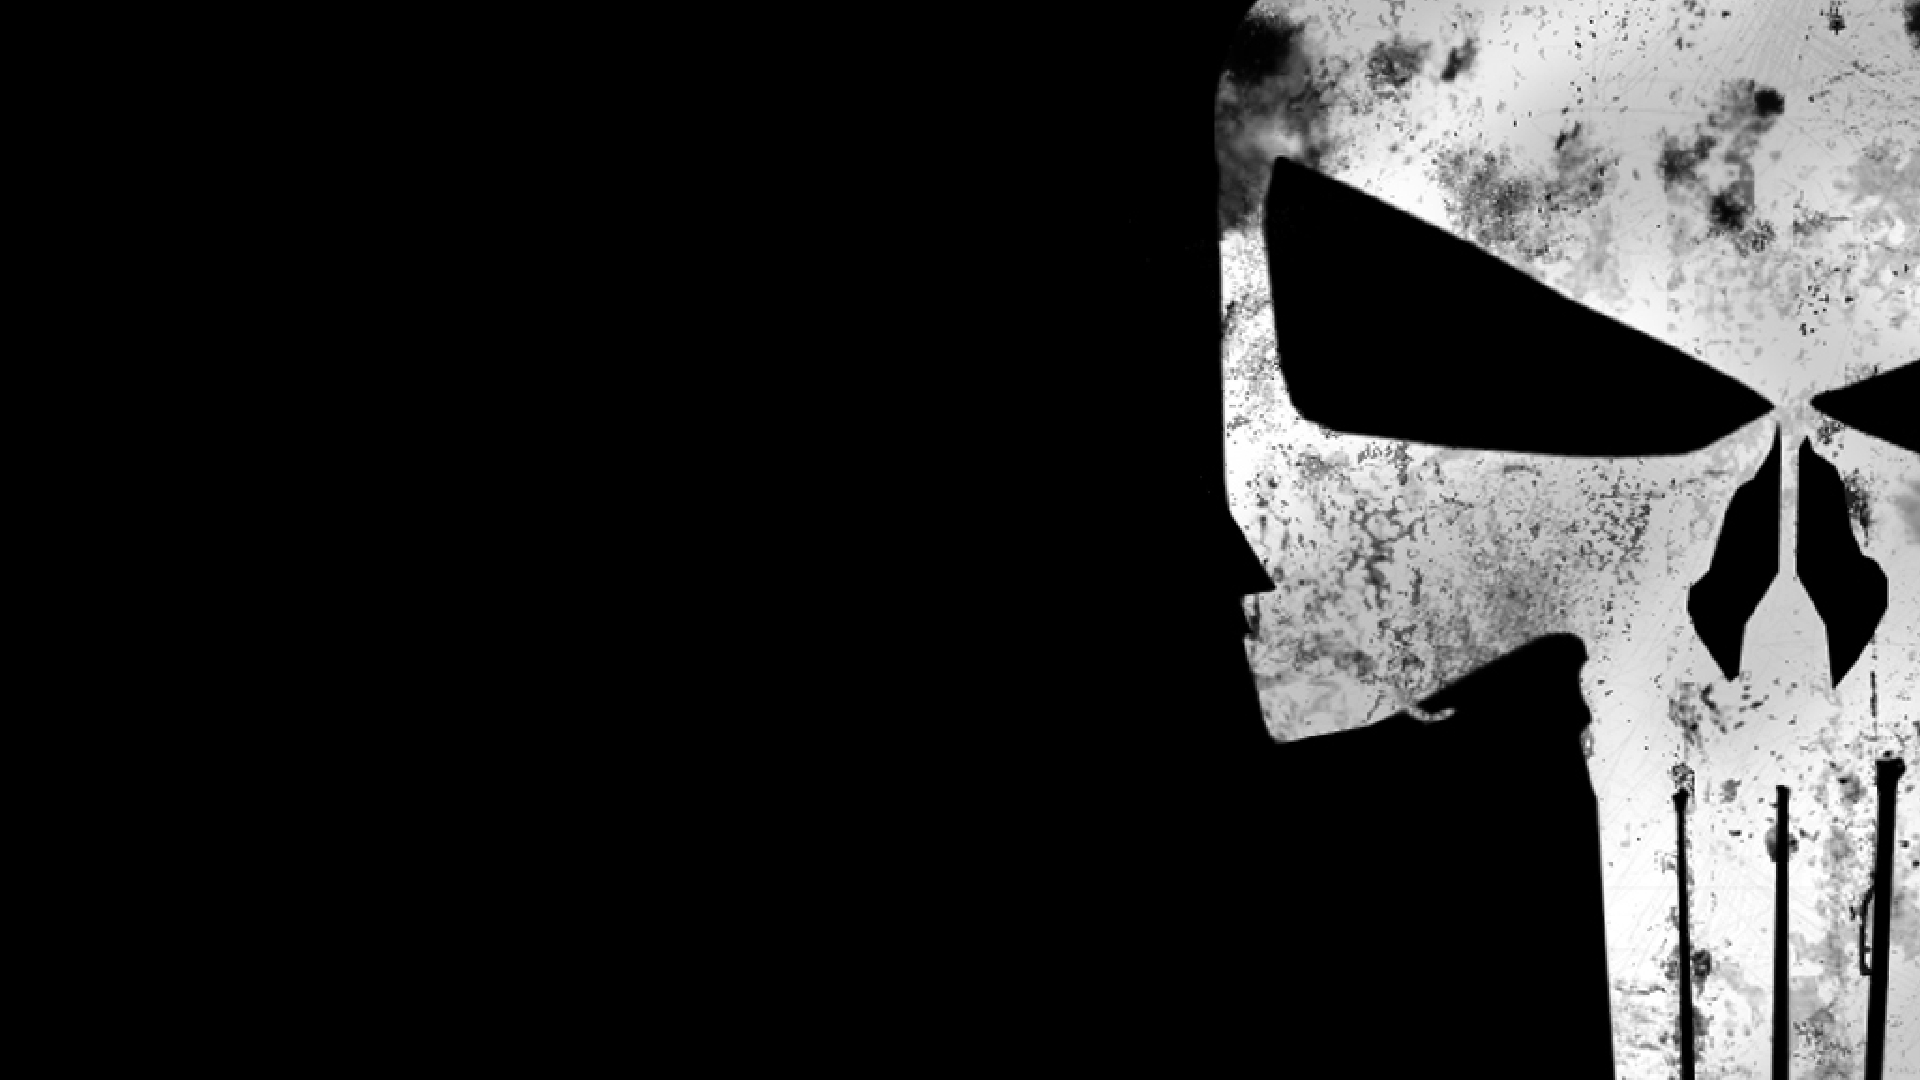 HD Punisher Wallpapers and Photos | HD Logos Wallpapers